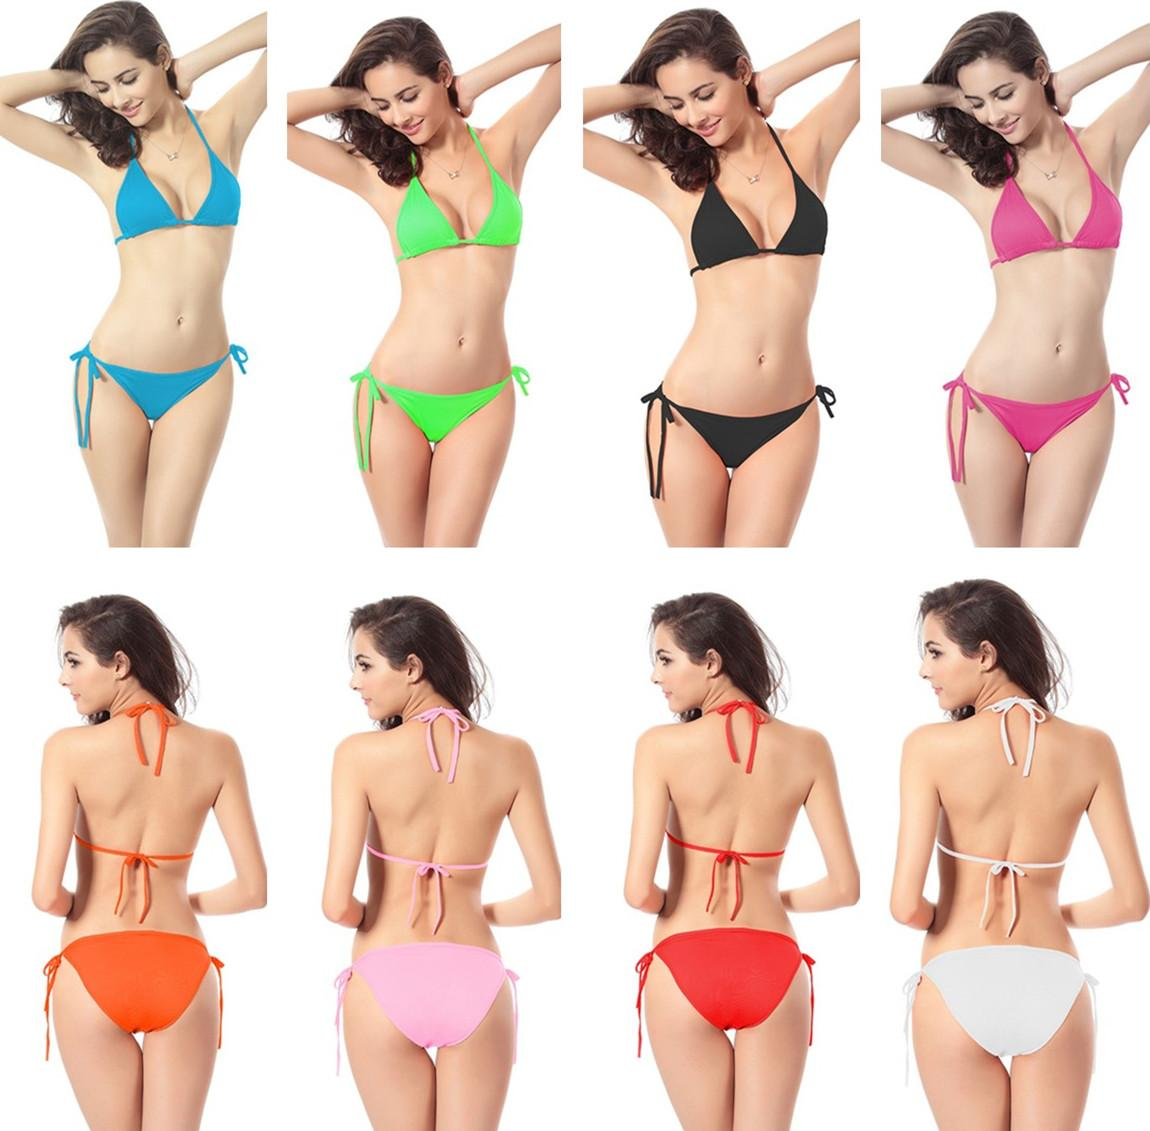 d36960e4fda1b 2019 Sexy Swimwear Plus Size For Women Two Pieces Swimsuit Beach Clothing Bathing  Suits Beach Bras Beachwear Push Up Bikini Set From Perfectday2015